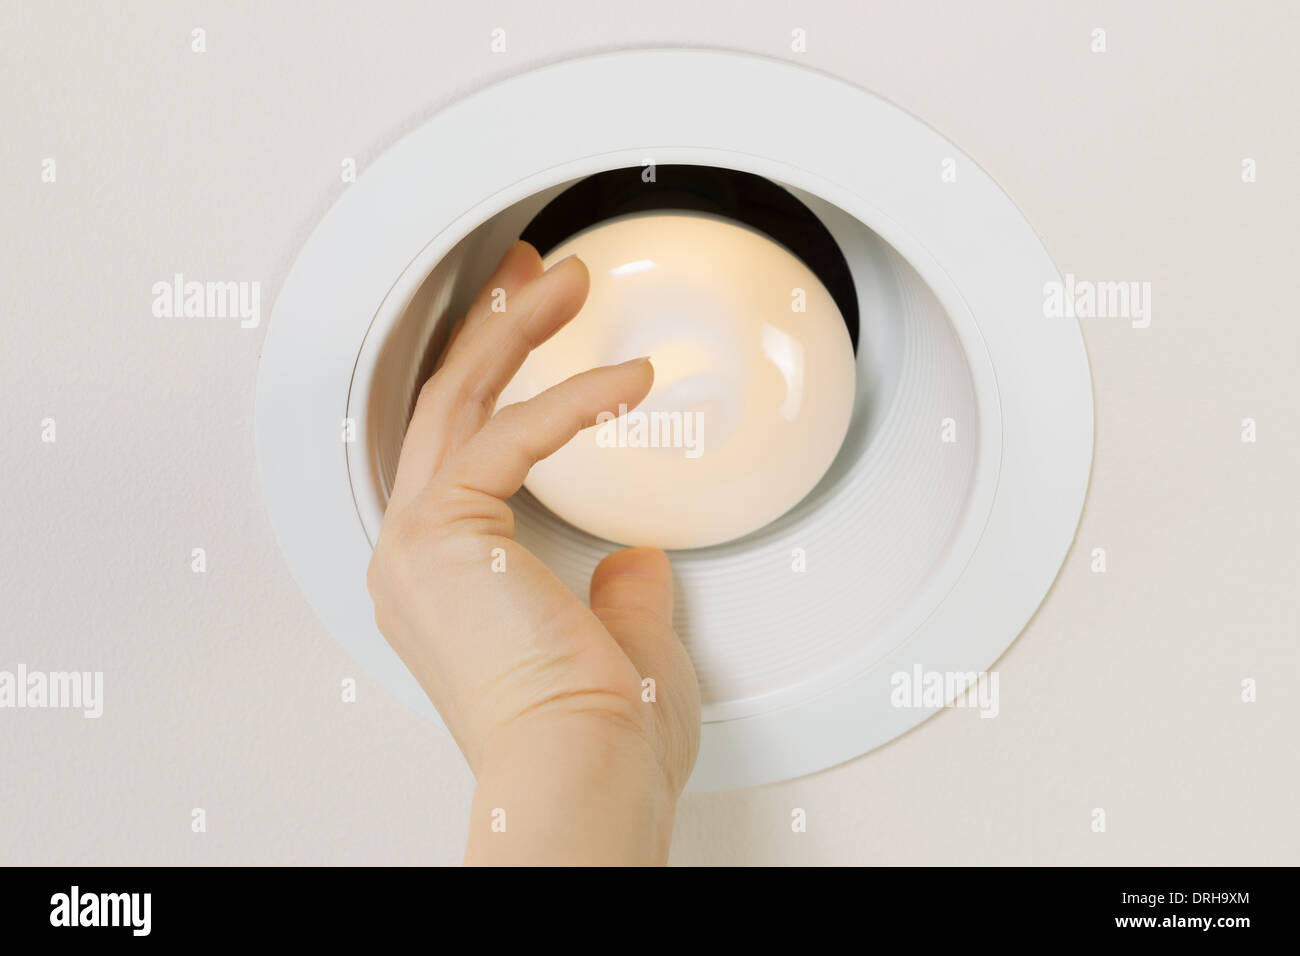 Photo of brand new illuminated flood light bulb being screwed in by female hand with recessed ceiling light mount in background - Stock Image